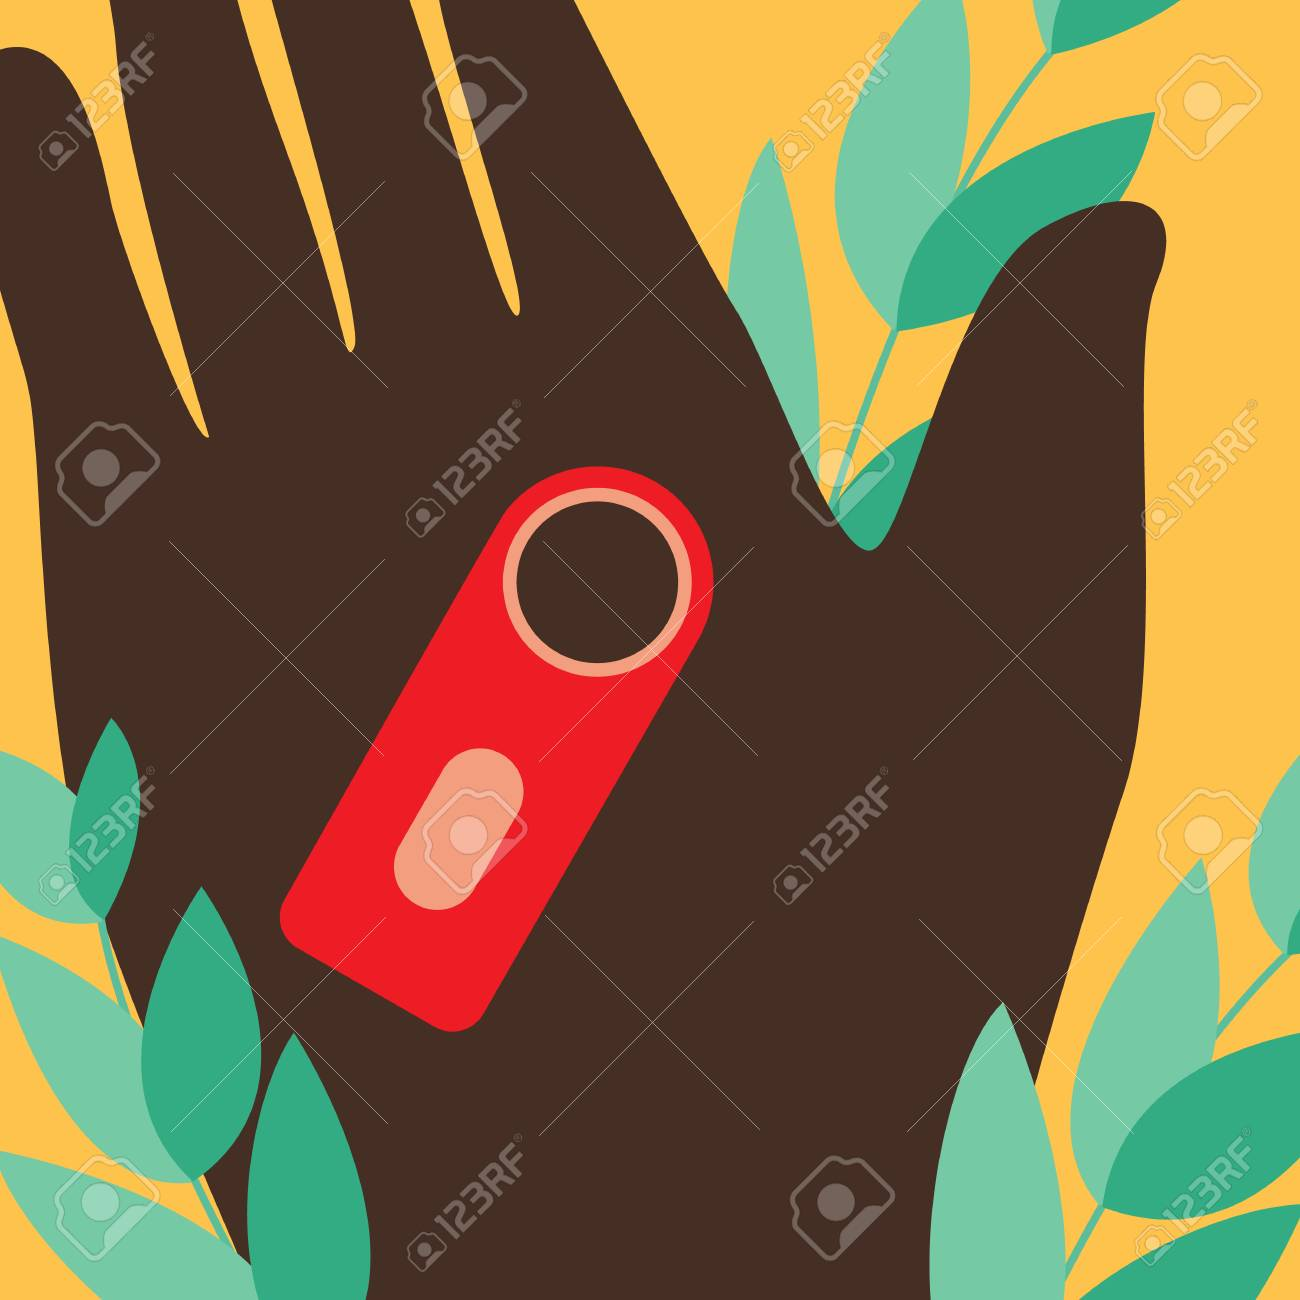 Woman hand with lost key finder - banner in flat style